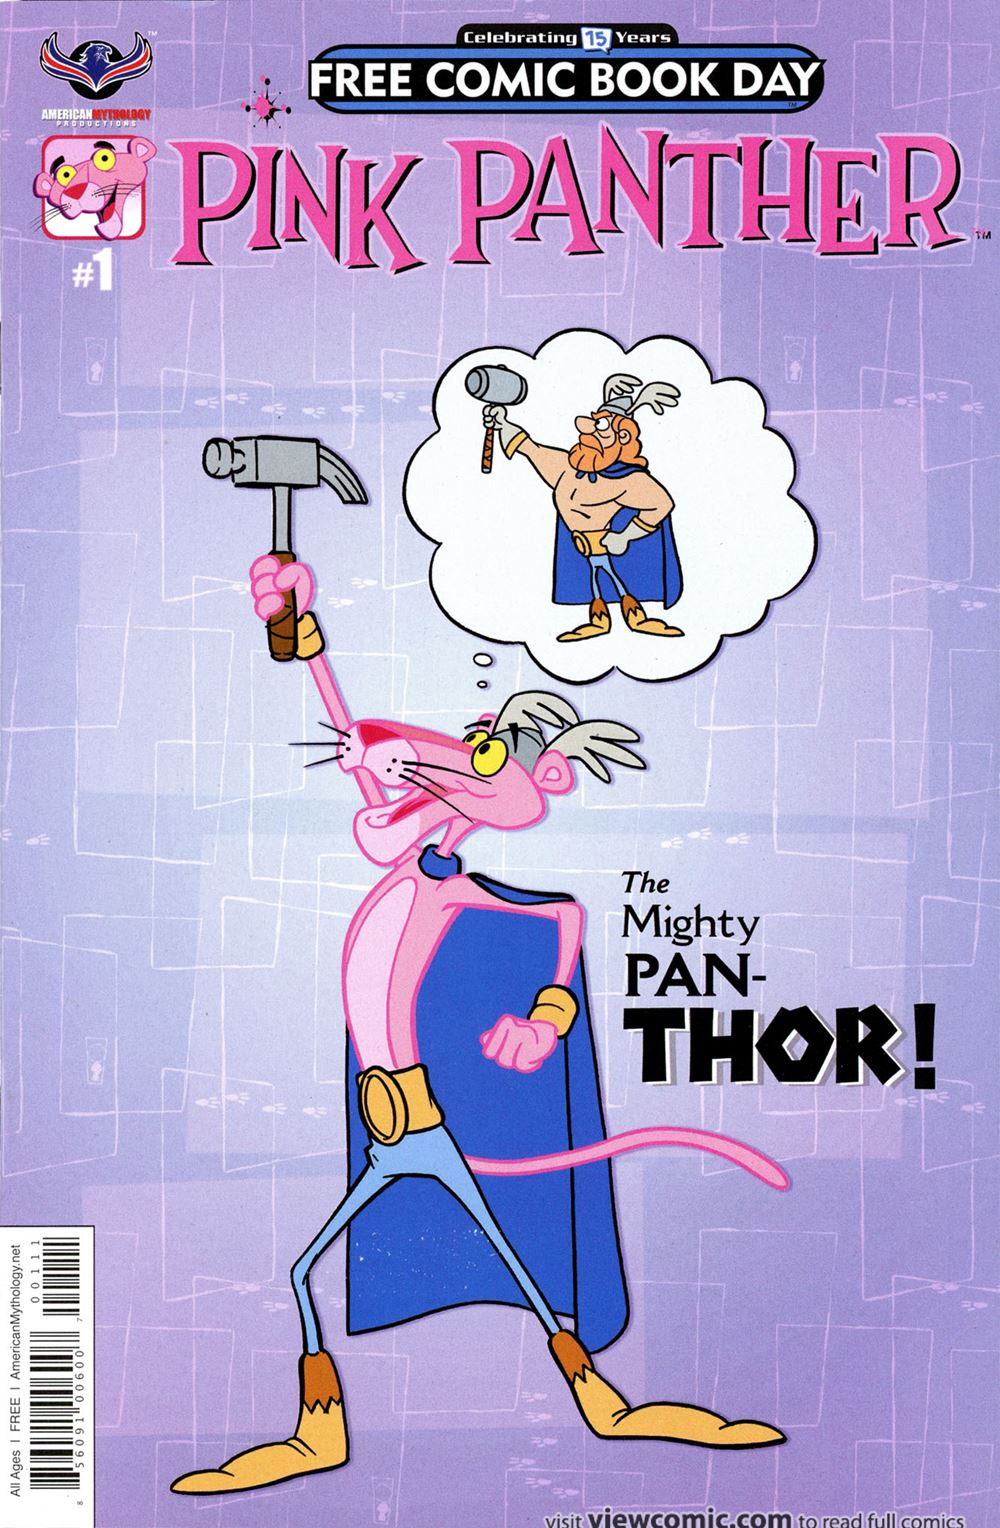 Free Comic Book Day 2016 Pink Panther Fcbd Edition 001 2016